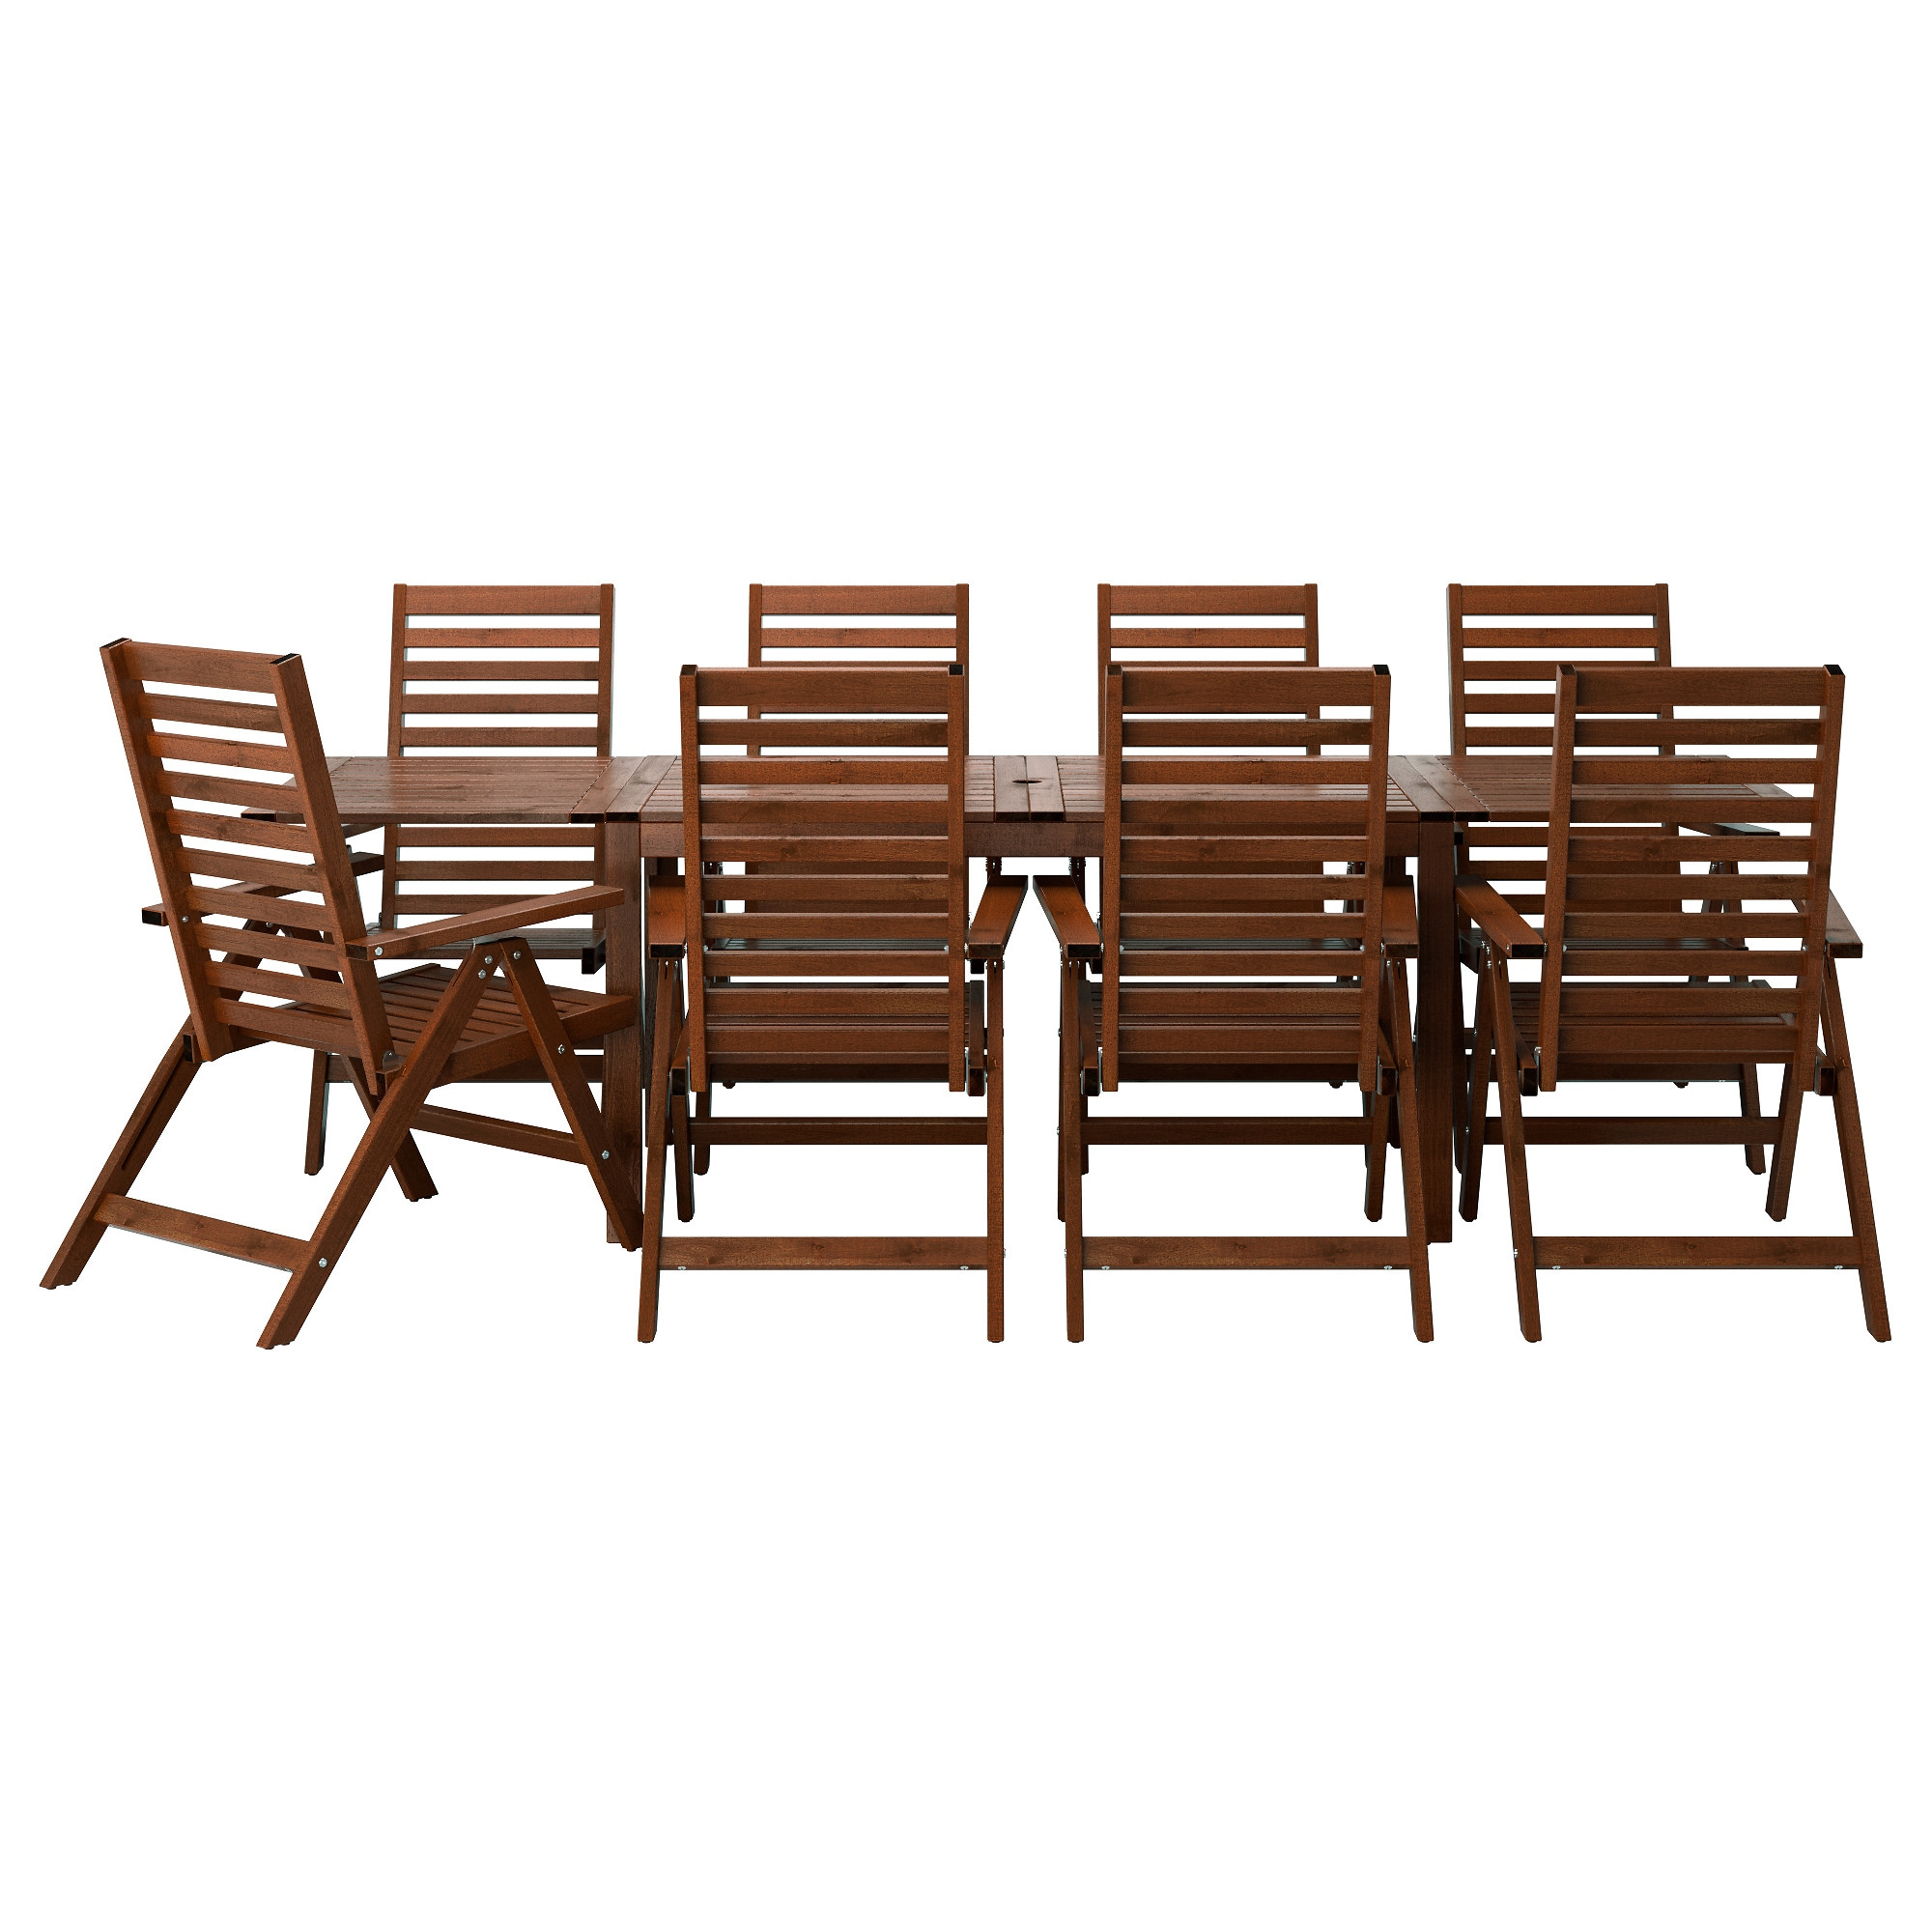 PPLAR  table 8 reclining chairs  outdoor  brown stained. Outdoor dining sets   IKEA